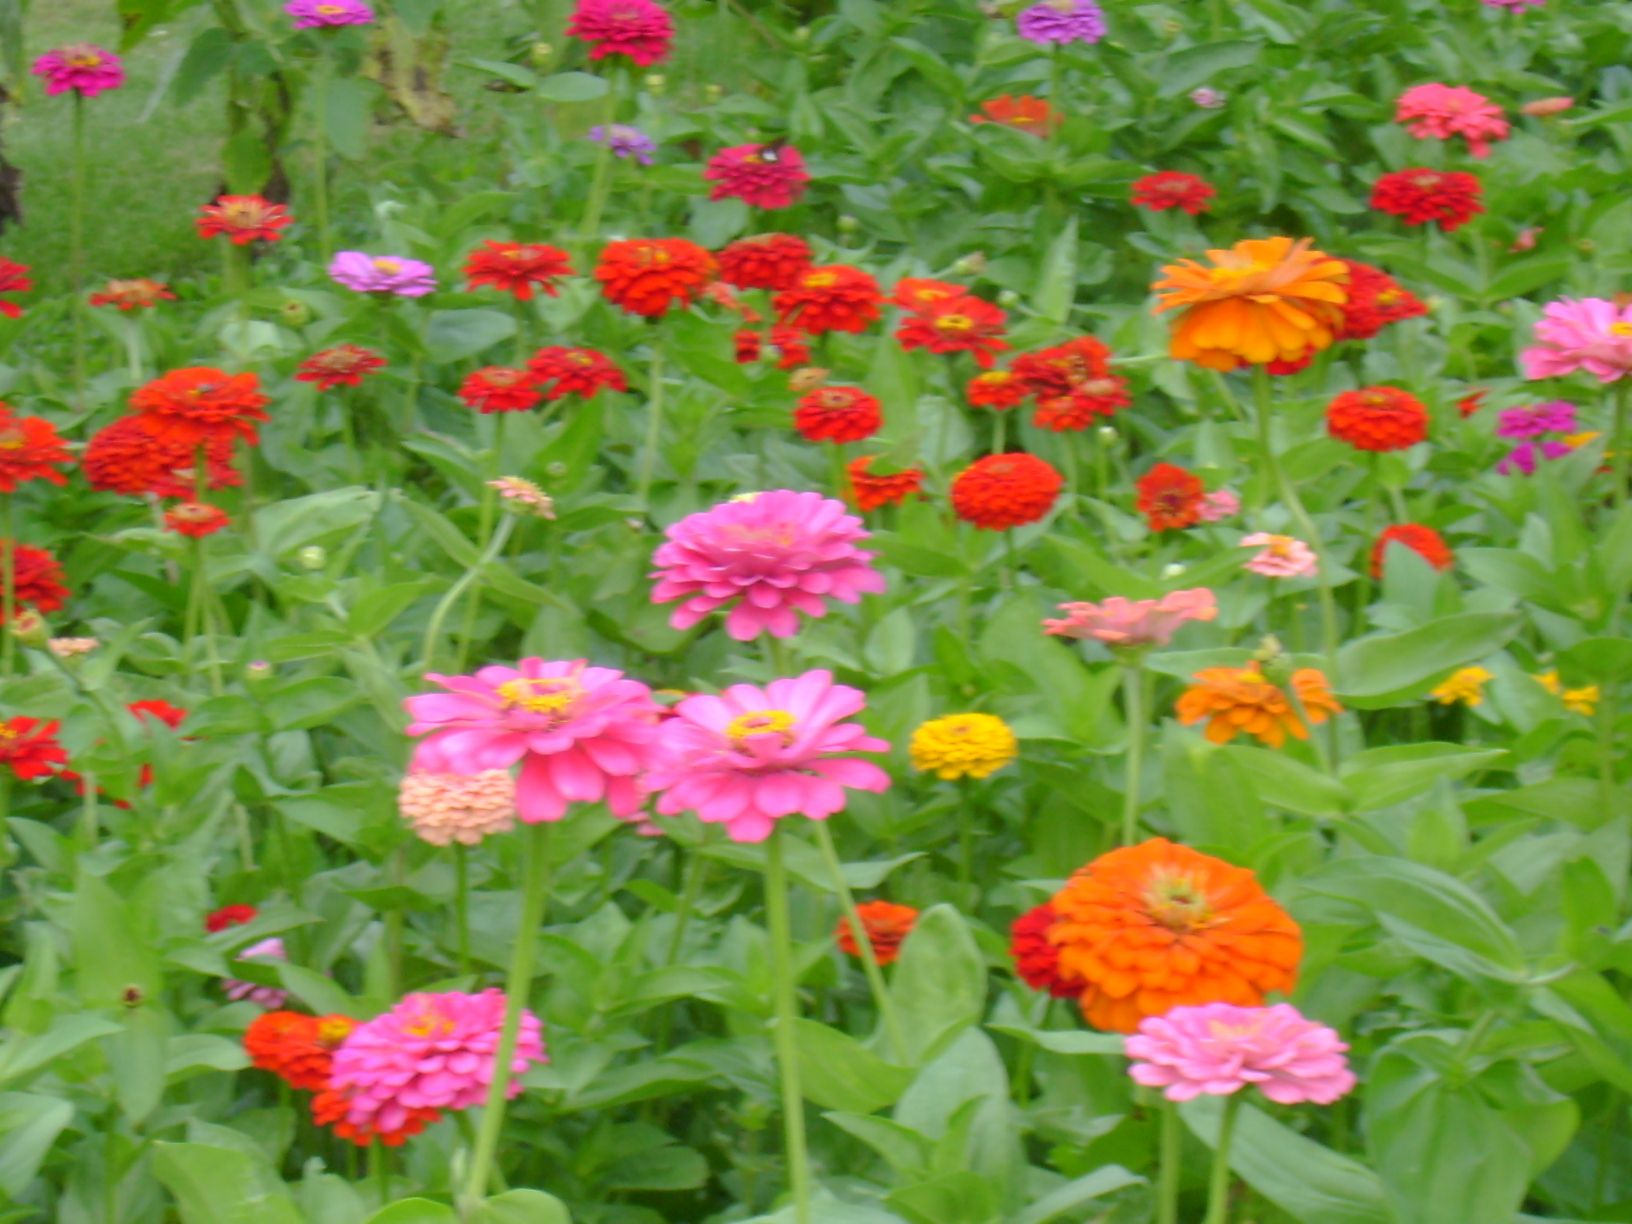 Majors flowers: growing zinnia at home from seed and caring for a plant 96